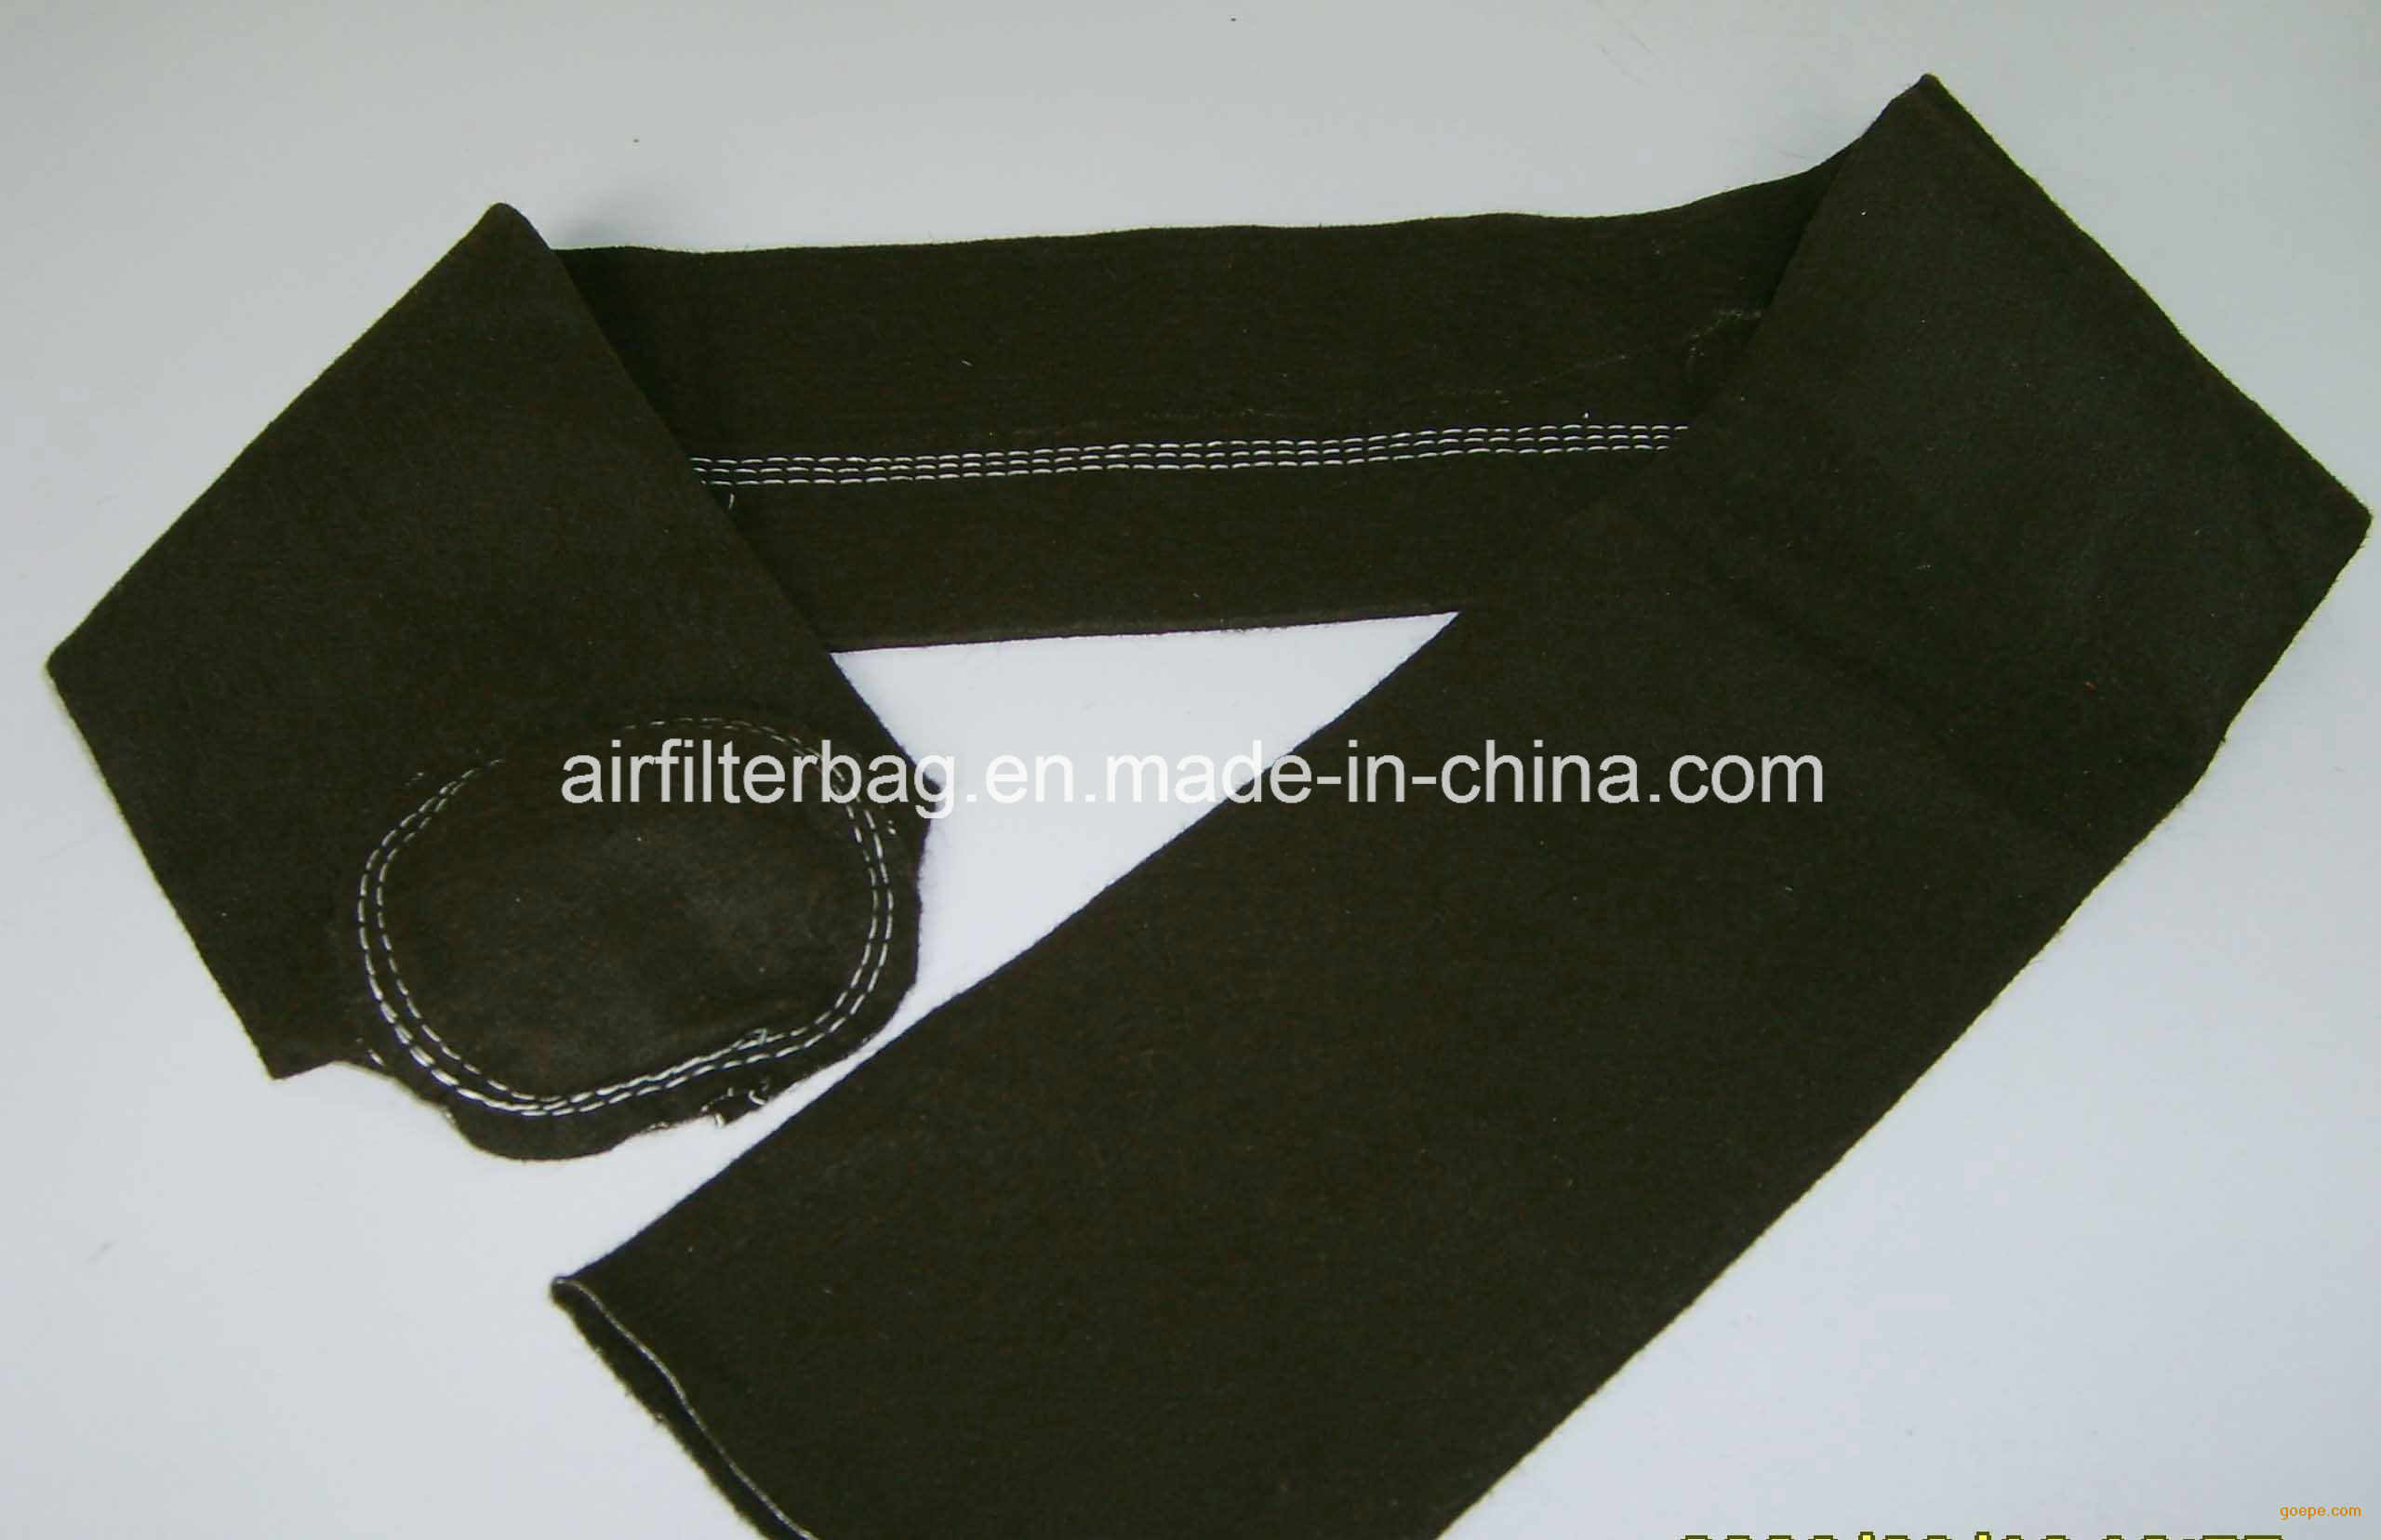 PTFE Filter Bag (Black) for Dust Collector (Air Filter)